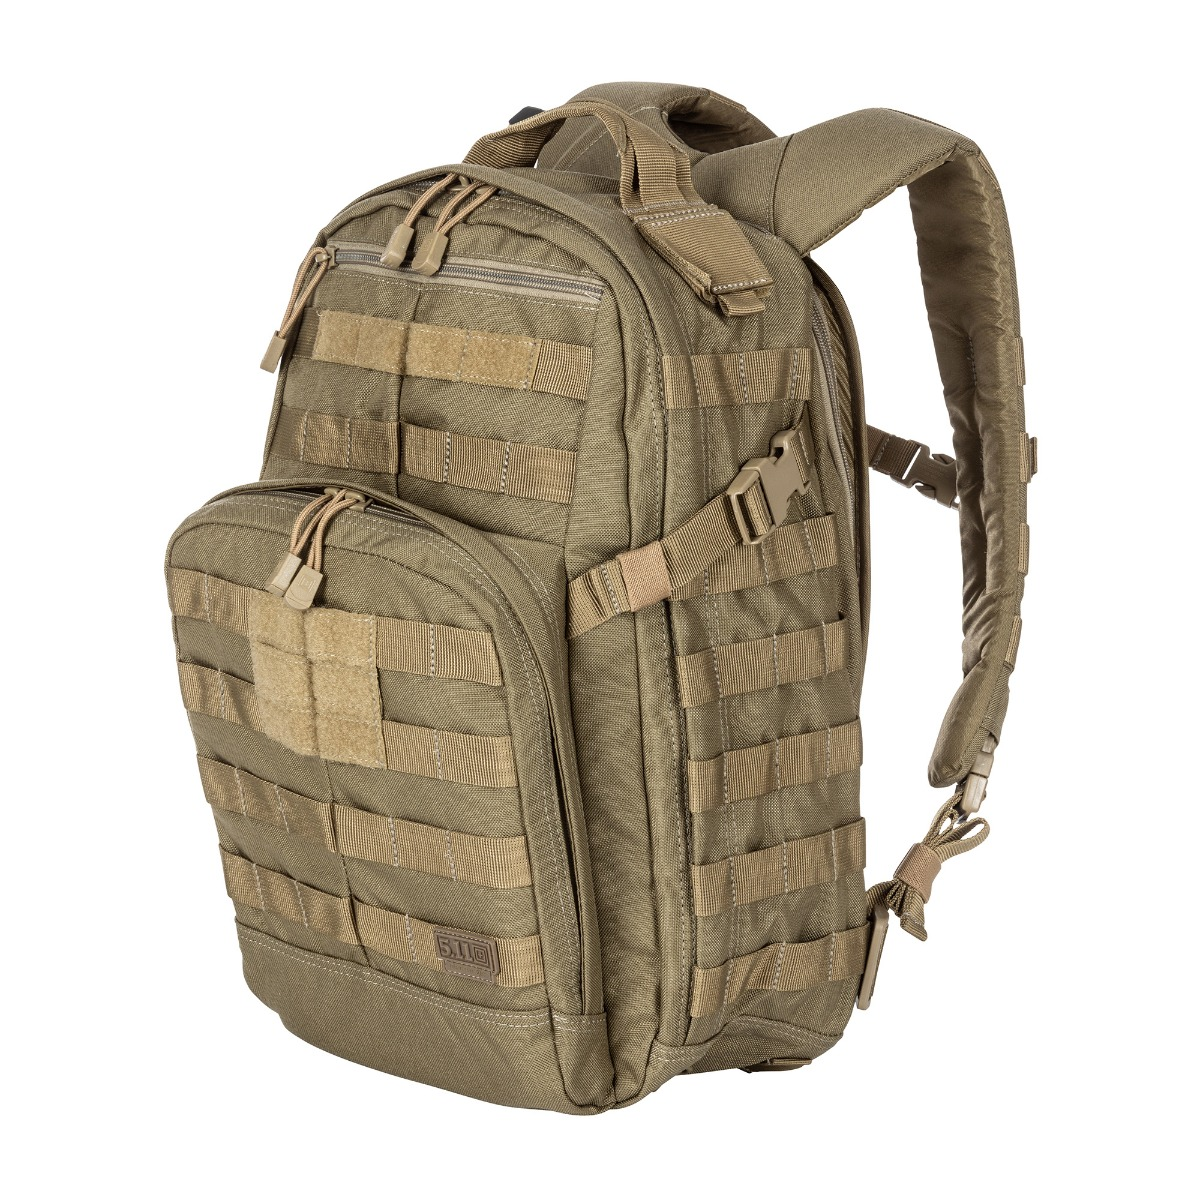 5.11 Tactical RUSH12 Backpack 24L (Khaki/Tan)